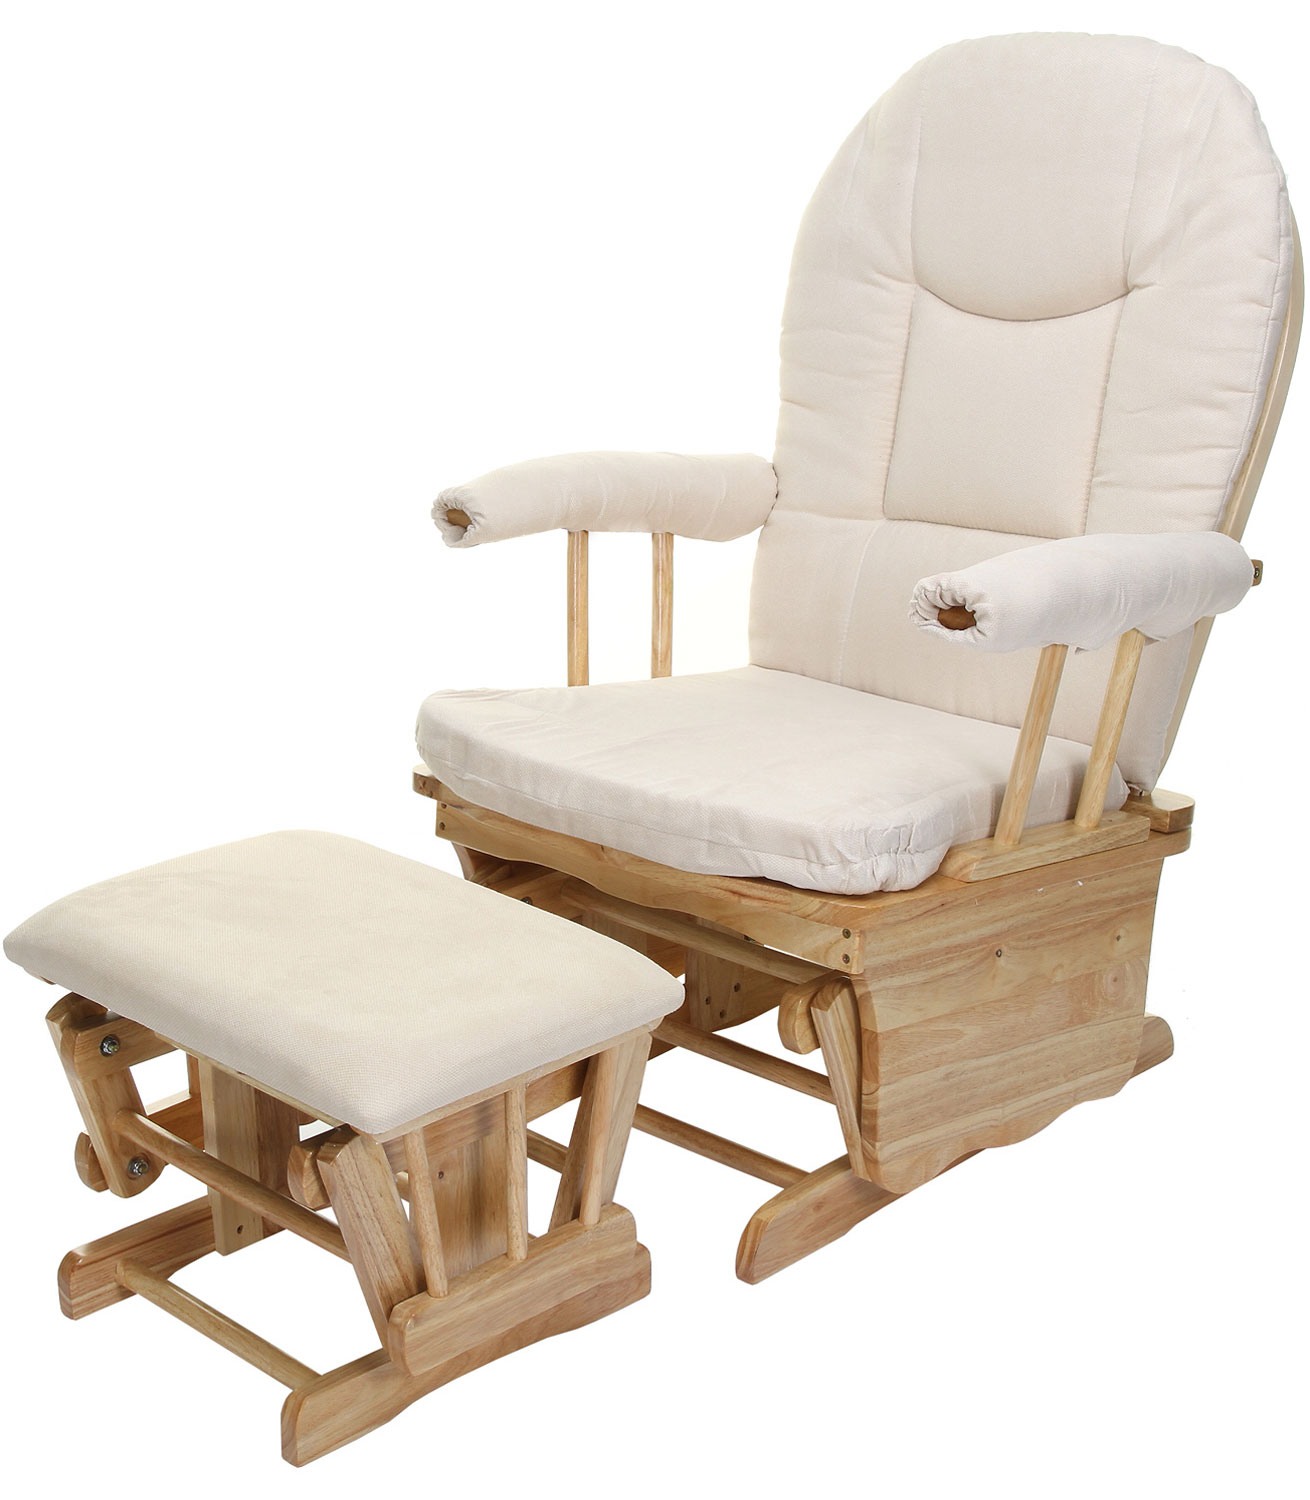 Top 9 comfortable chairs for pregnant ladies styles at life for Nursing rocking chair design